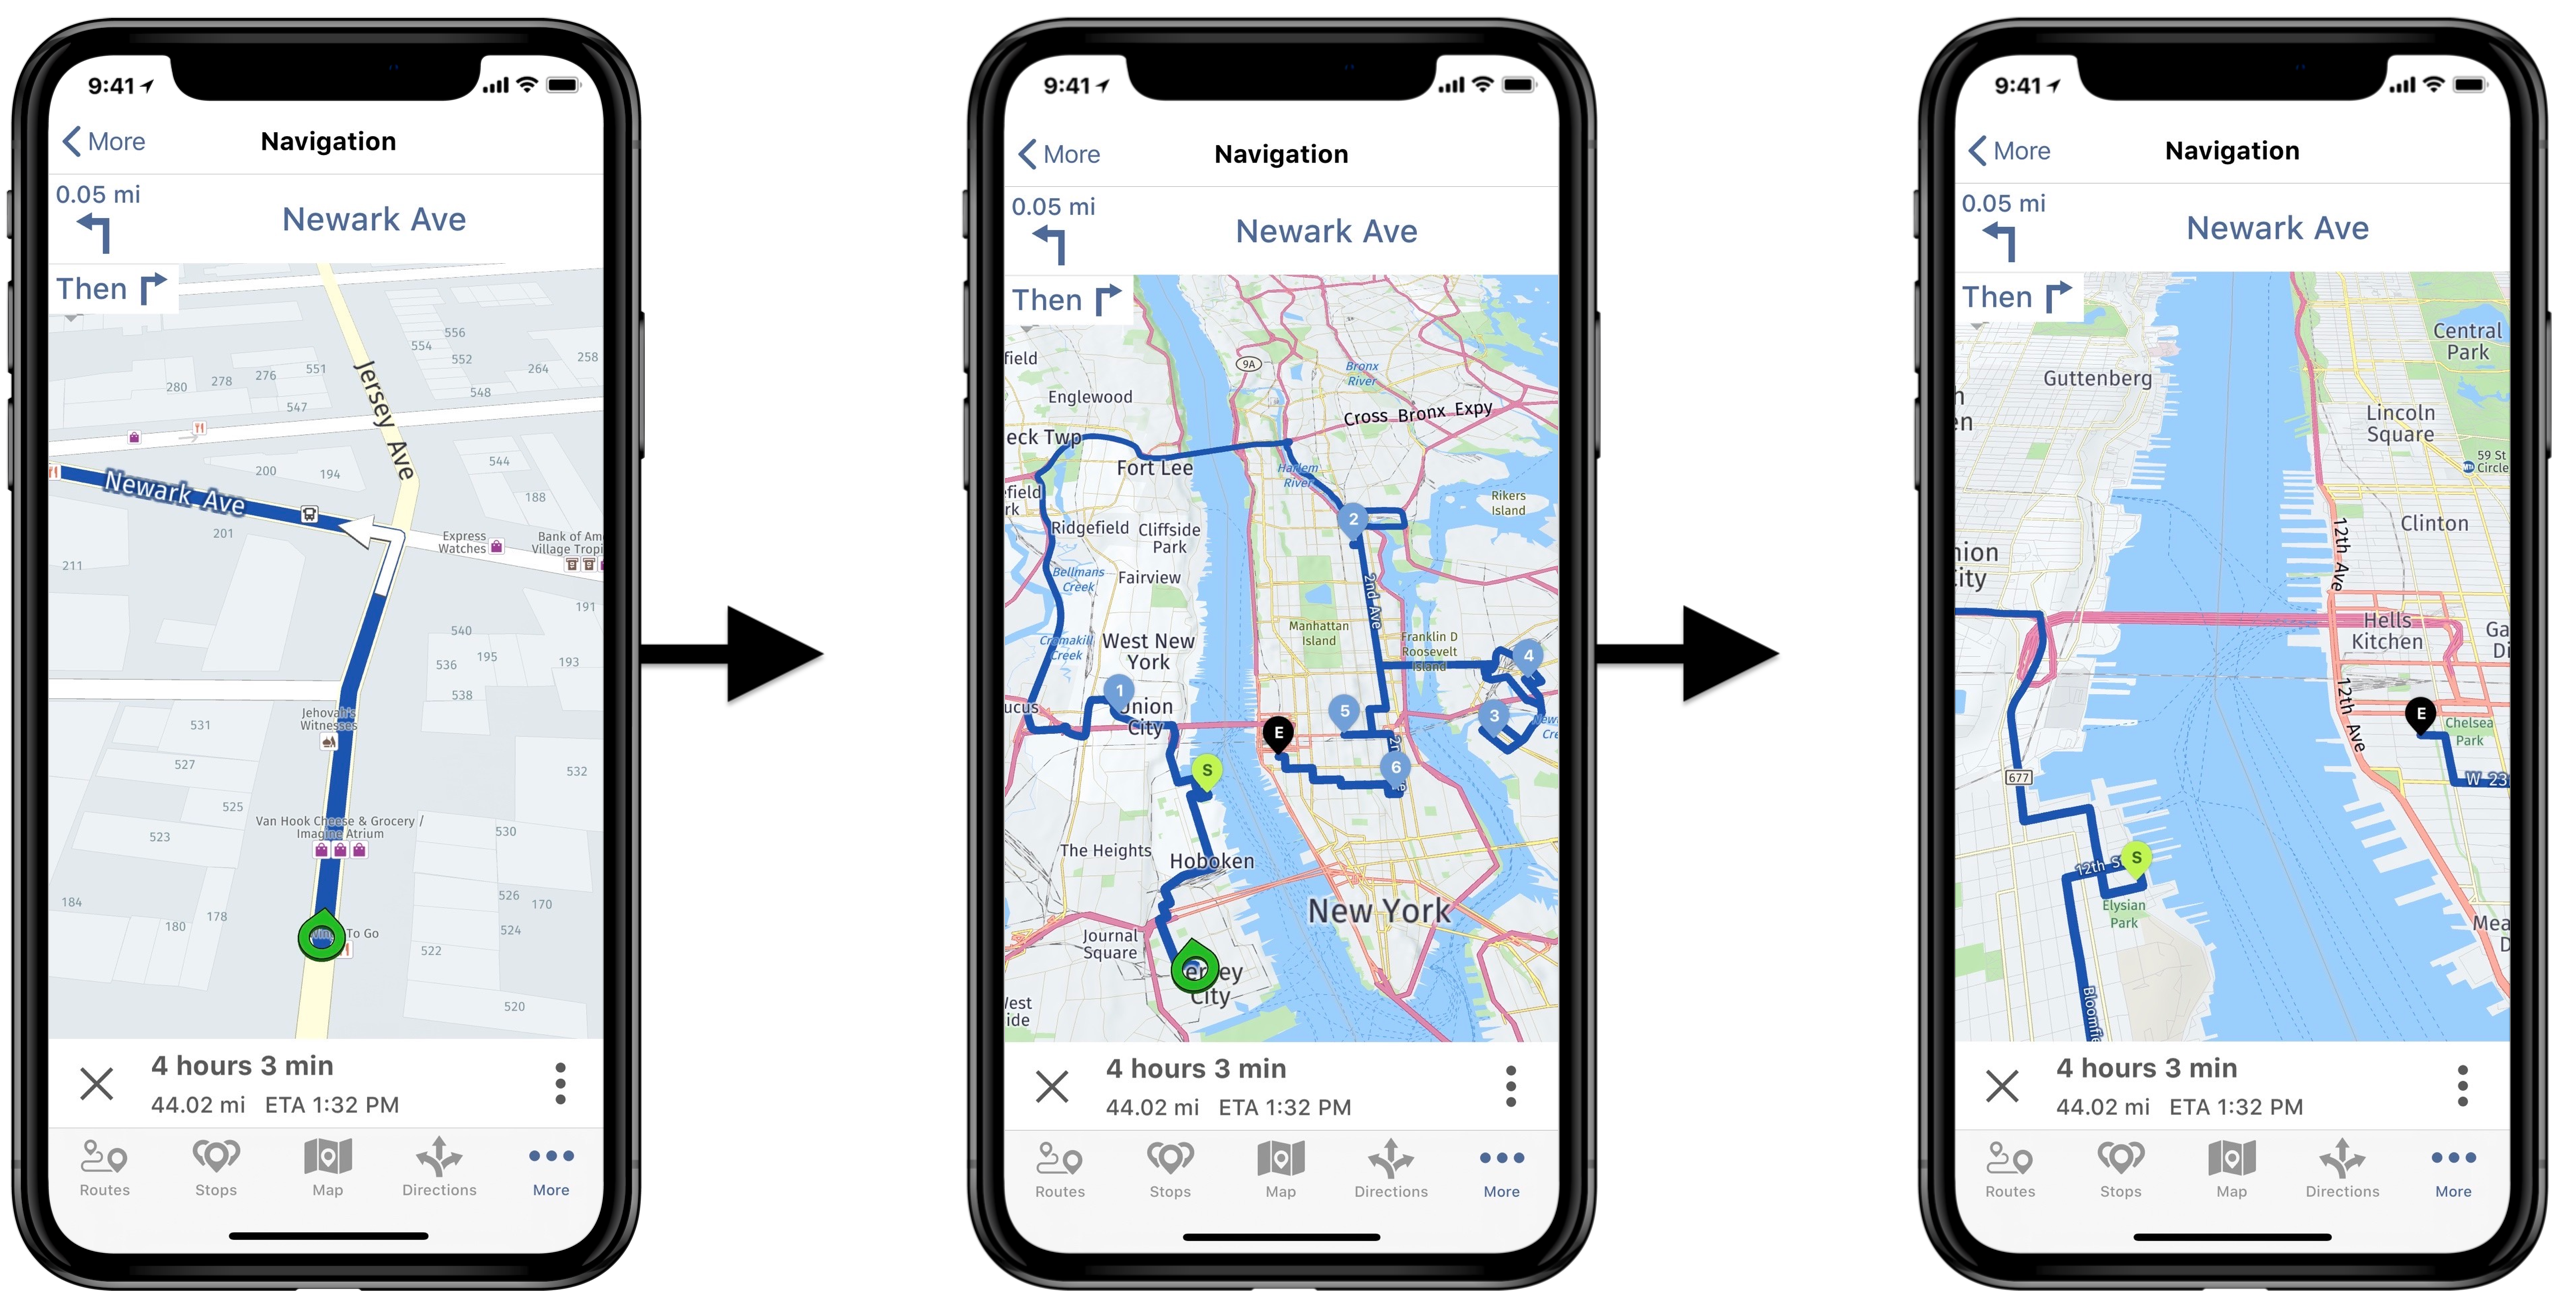 Use Route4Me's iOS in-app voice-guided navigation to navigate the opened commercial route.